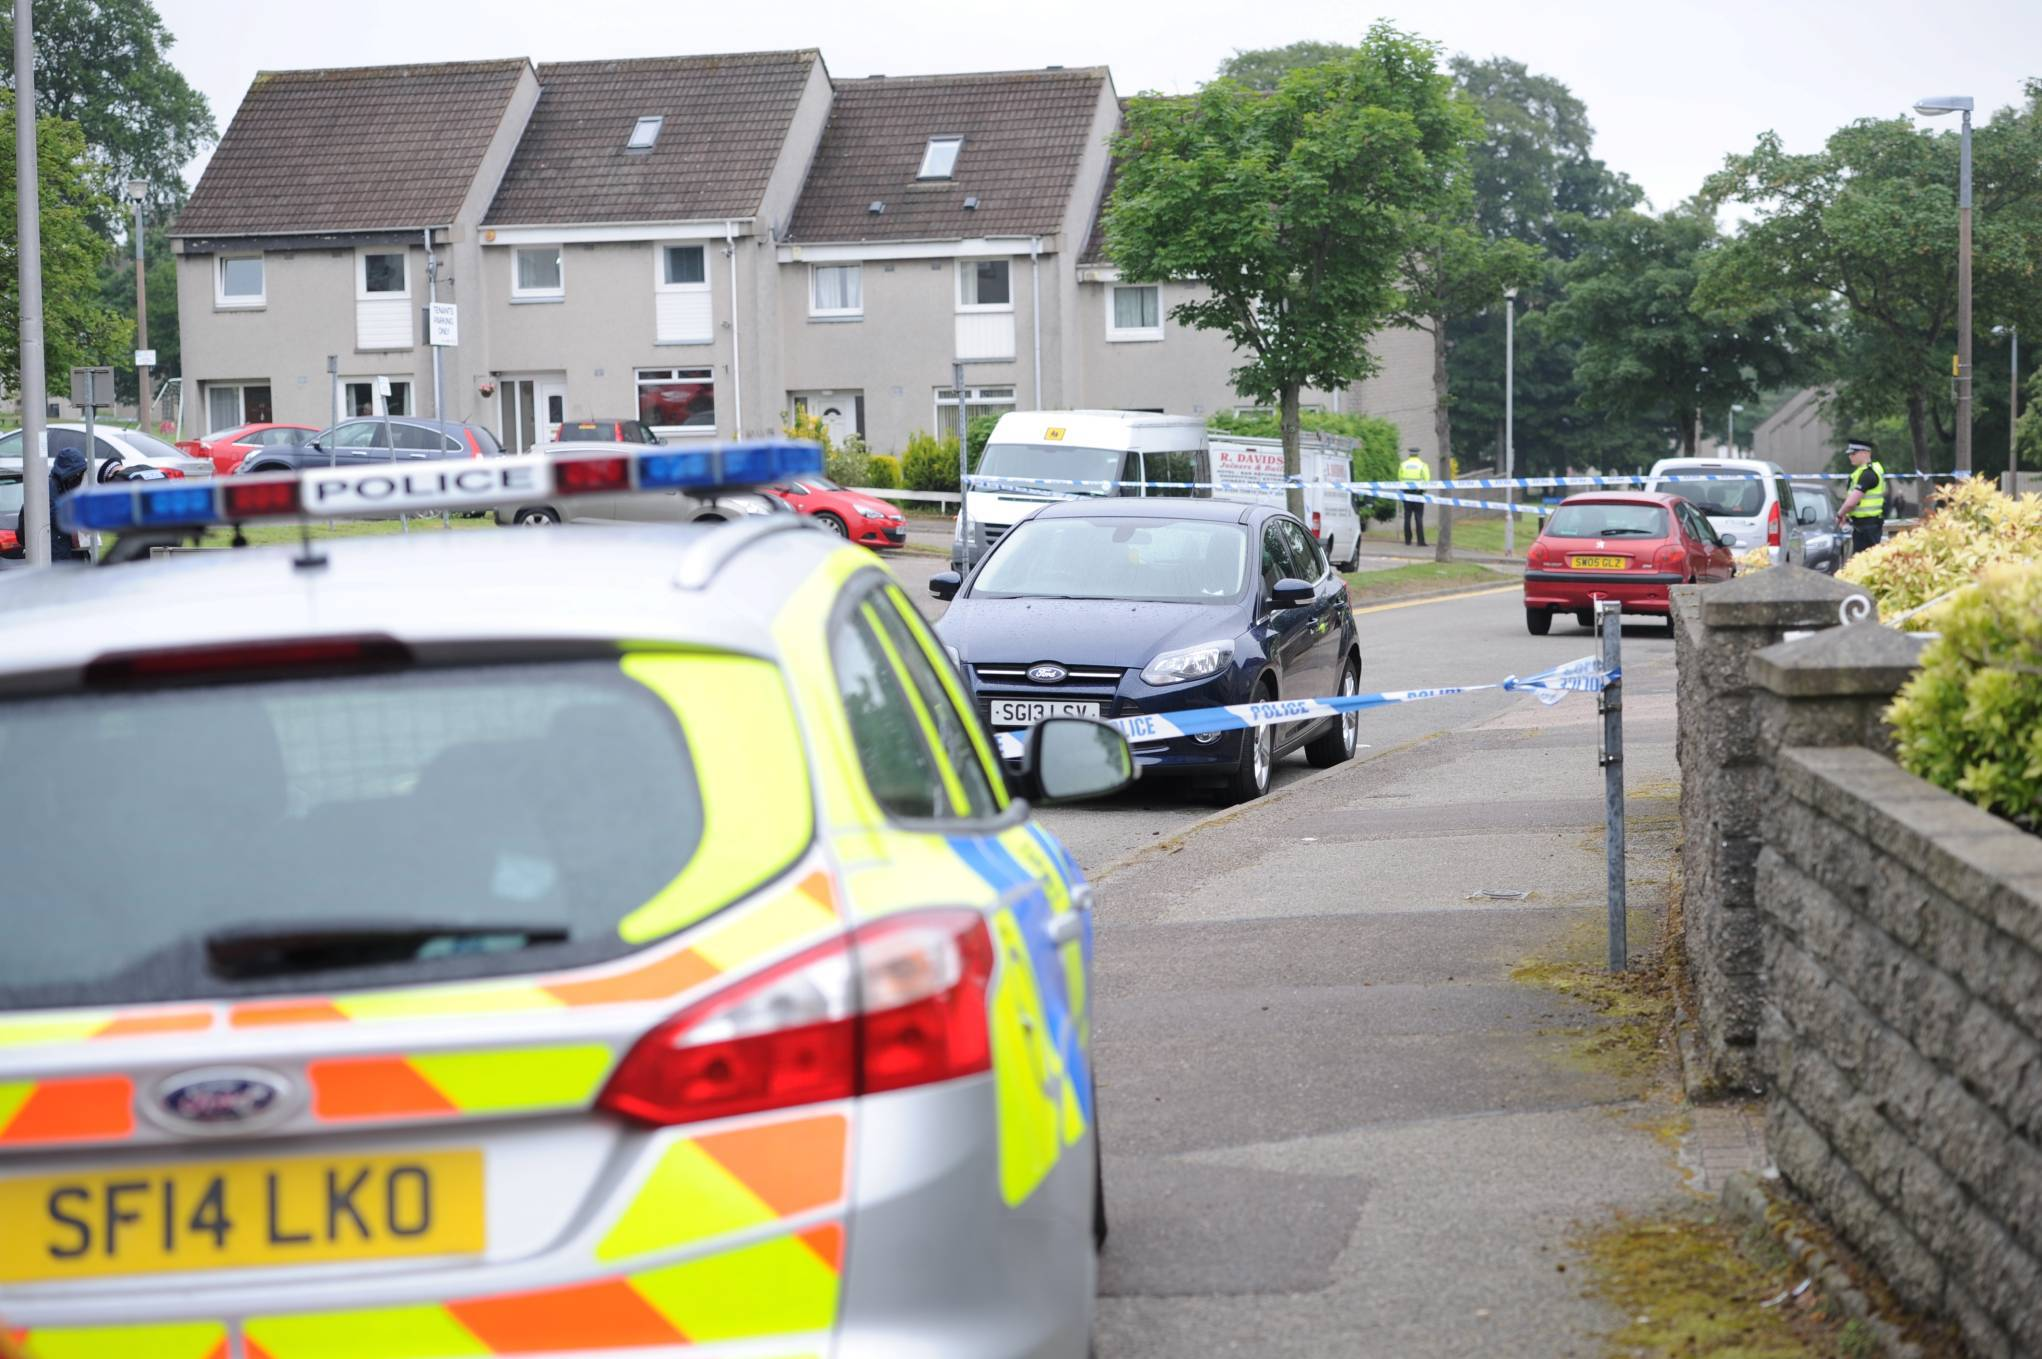 Police sealed off roads around the property in Aberdeen's Cornhill Terrace after the bodies of a man and woman were found